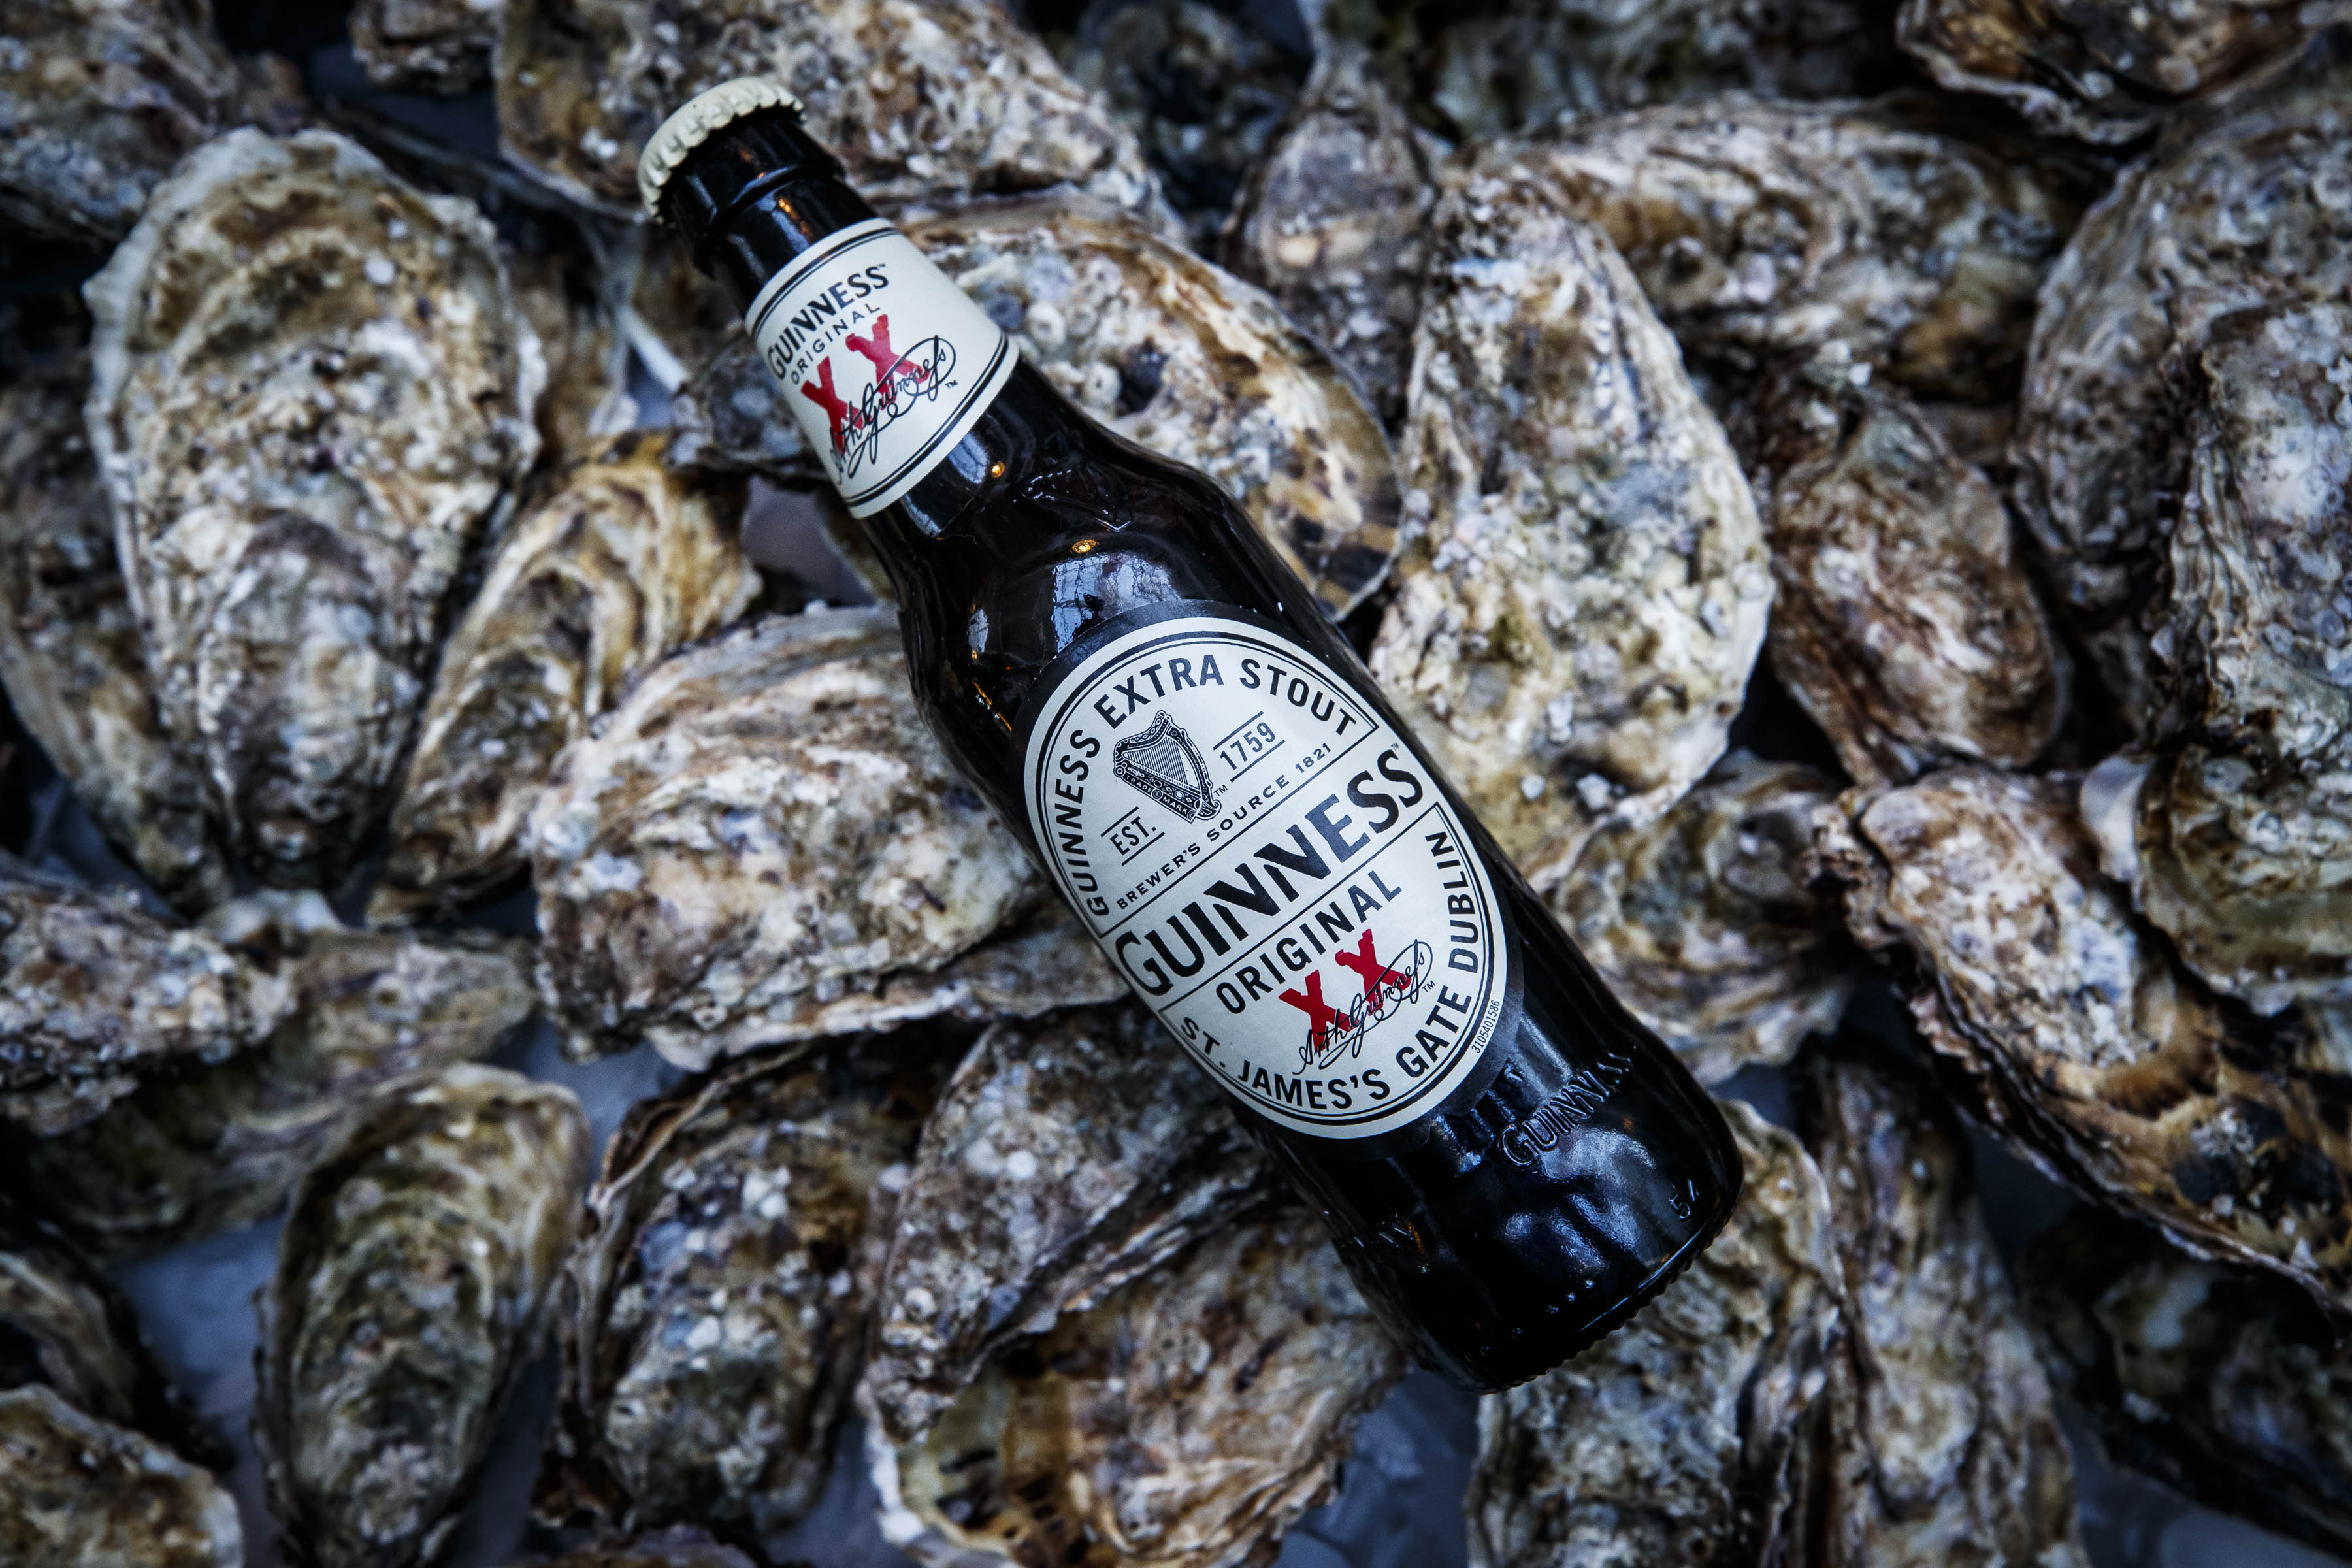 Guinness Storehouse Seafest celebrates the best of Irish seafood and brewing, including the famous Guinness and oysters pairing